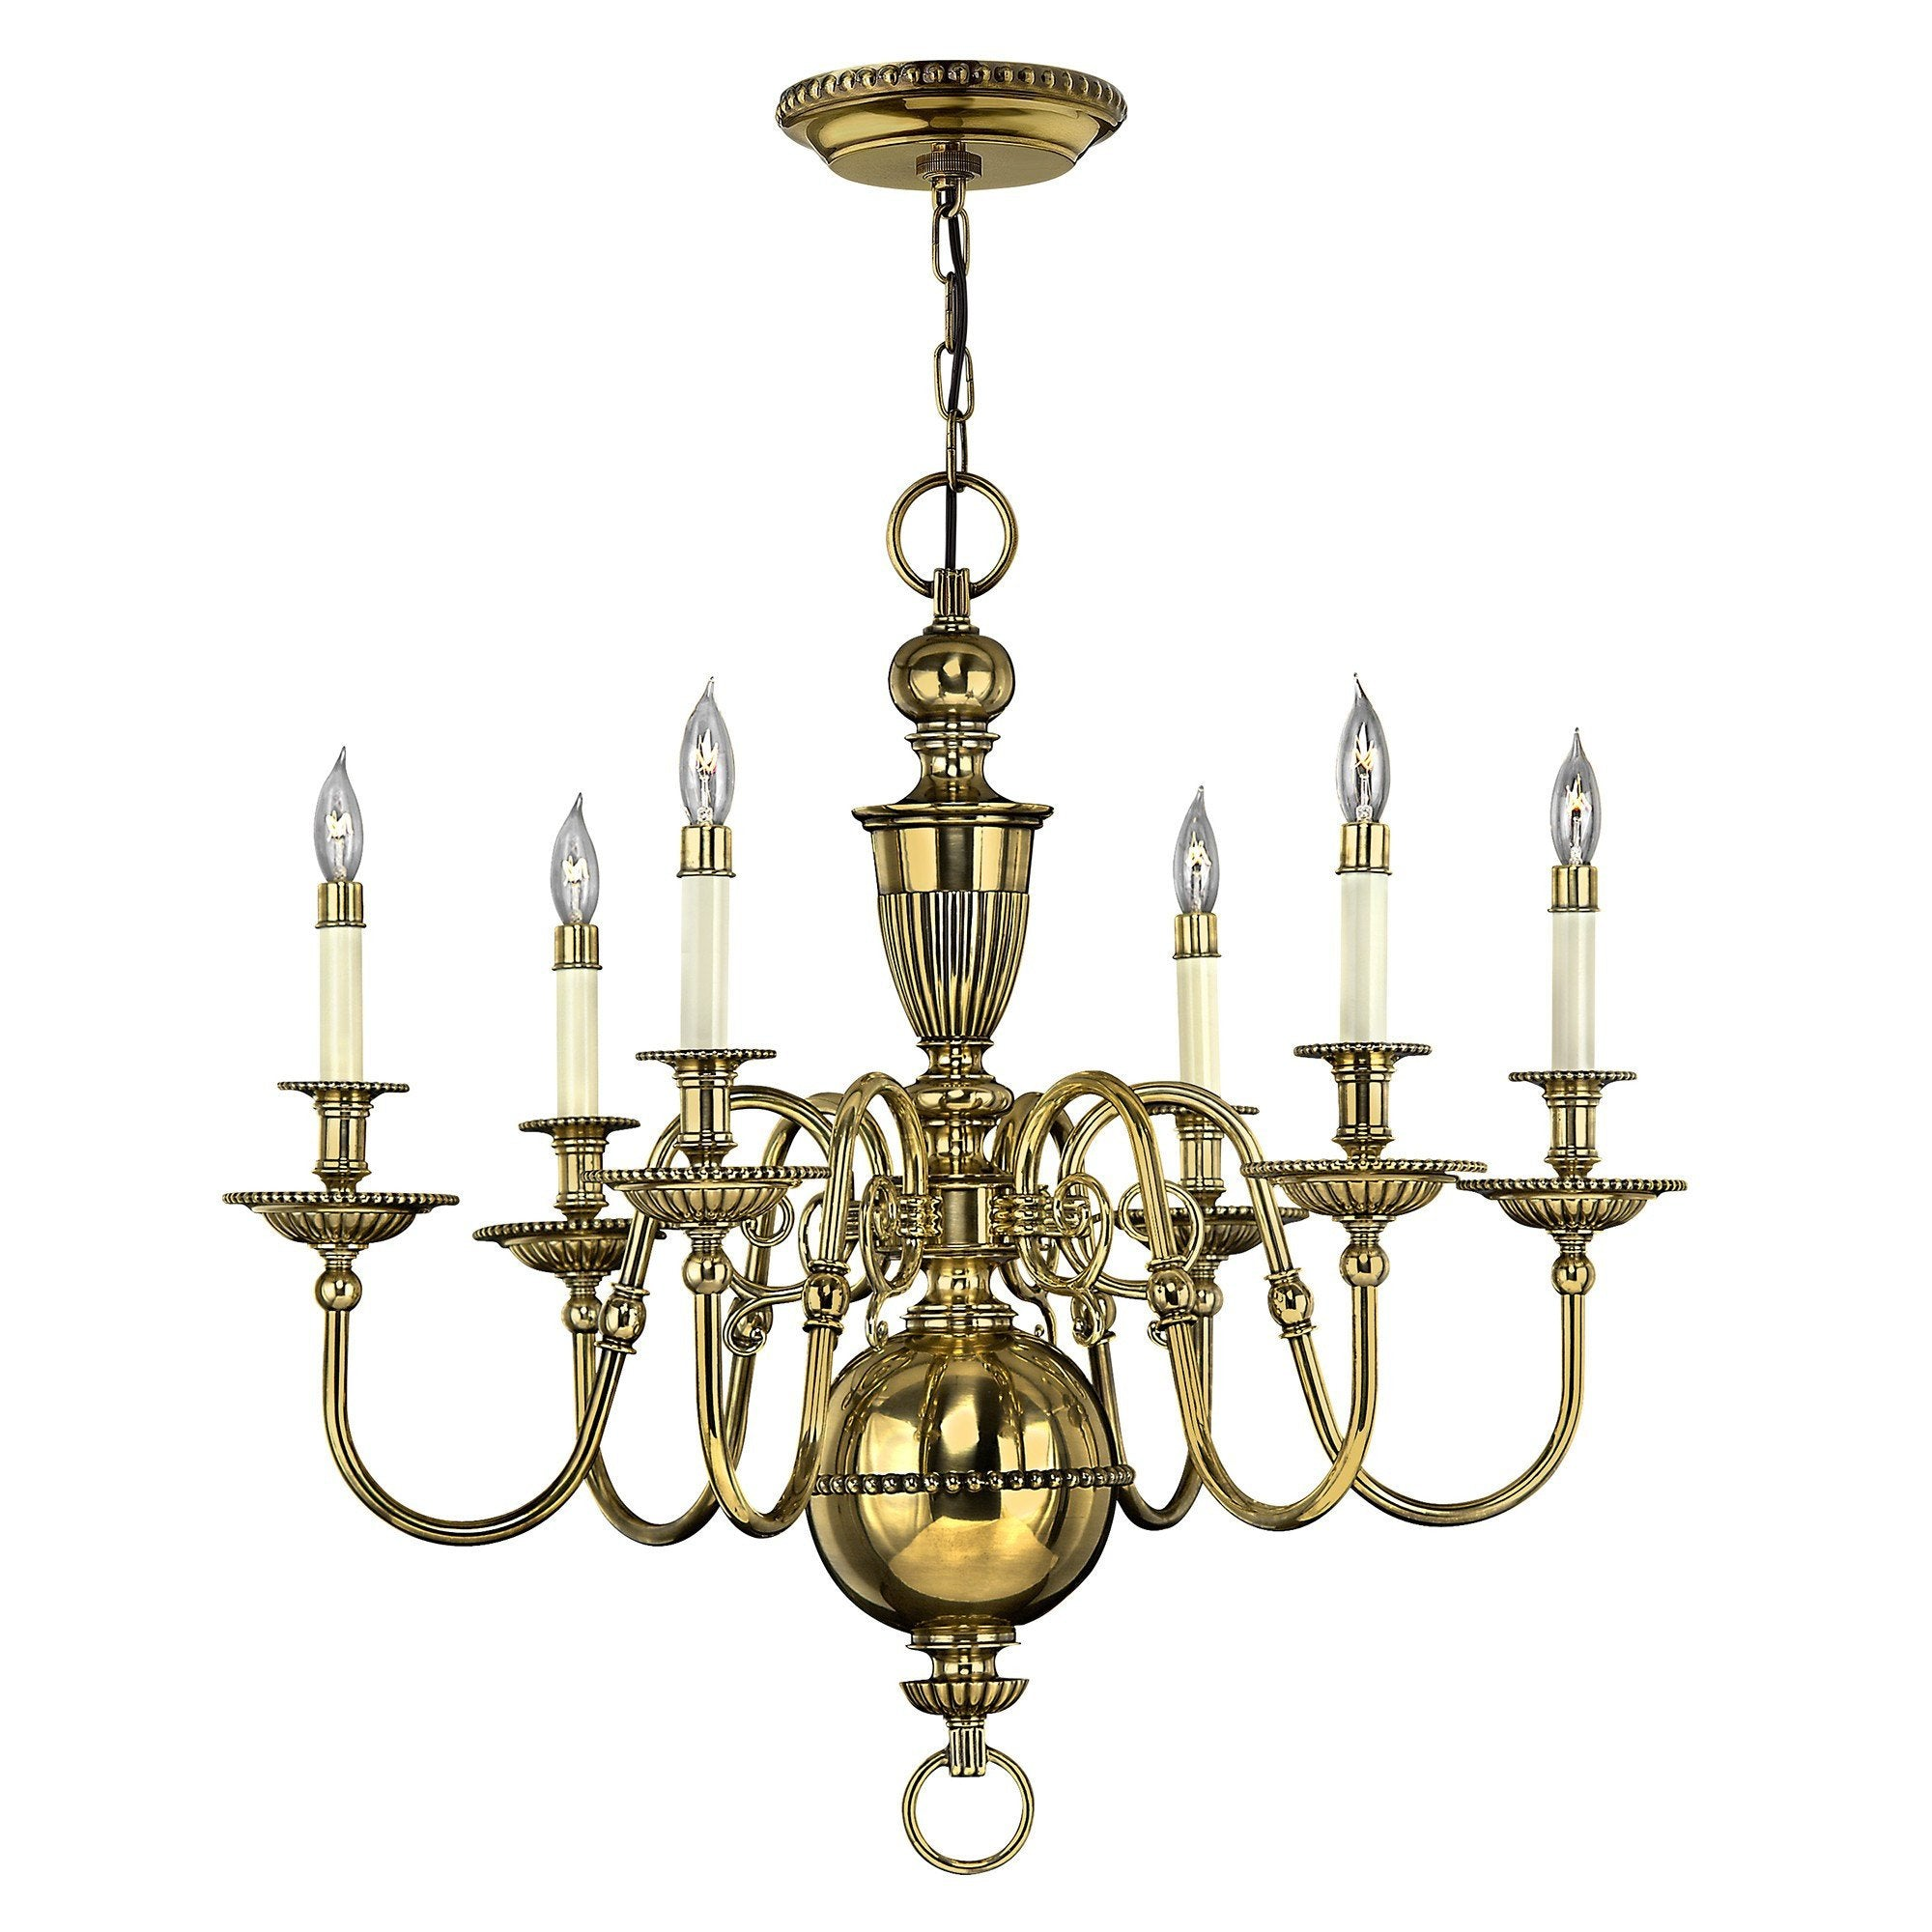 Hinkley Cambridge 6 Light Chandelier - London Lighting - 1